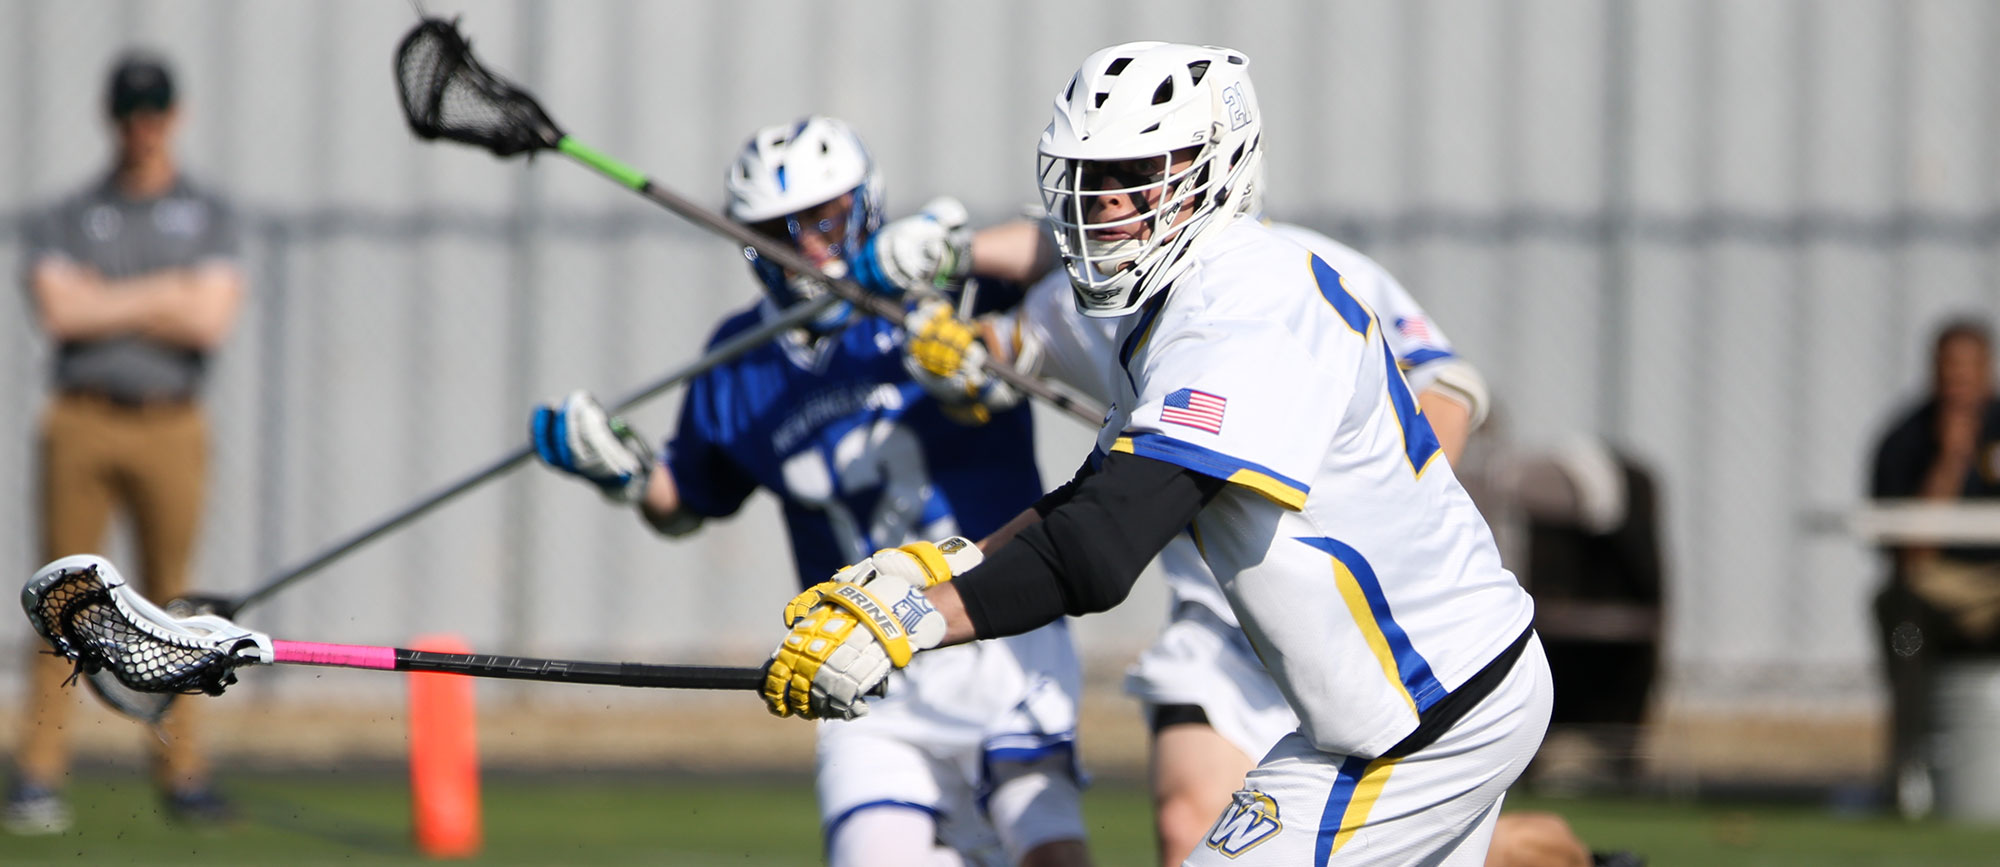 Hunter Cocks won 23-of-25 faceoffs and scooped up a game-high 12 ground balls in Western New England's 20-8 win over Nichols on Thursday. (Photo by Chris Marion)